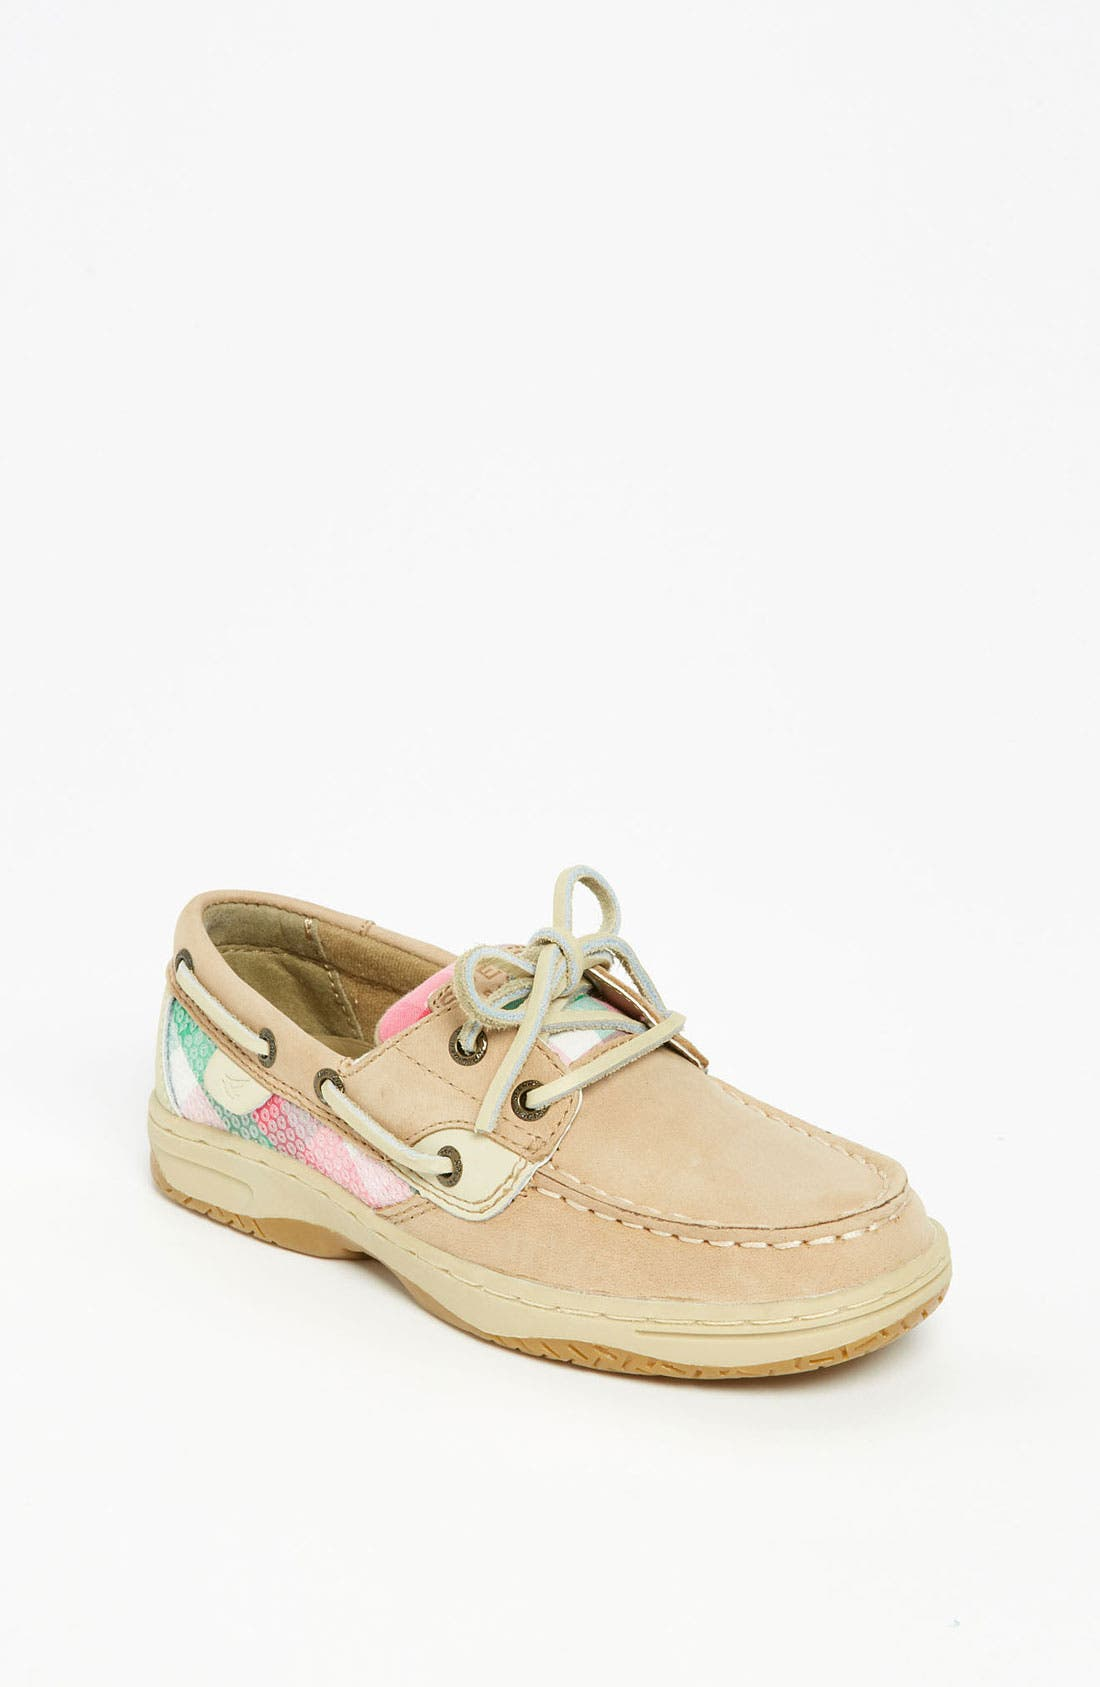 Main Image - Sperry Top-Sider® 'Bluefish' Boat Shoe (Walker, Toddler, Little Kid & Big Kid)